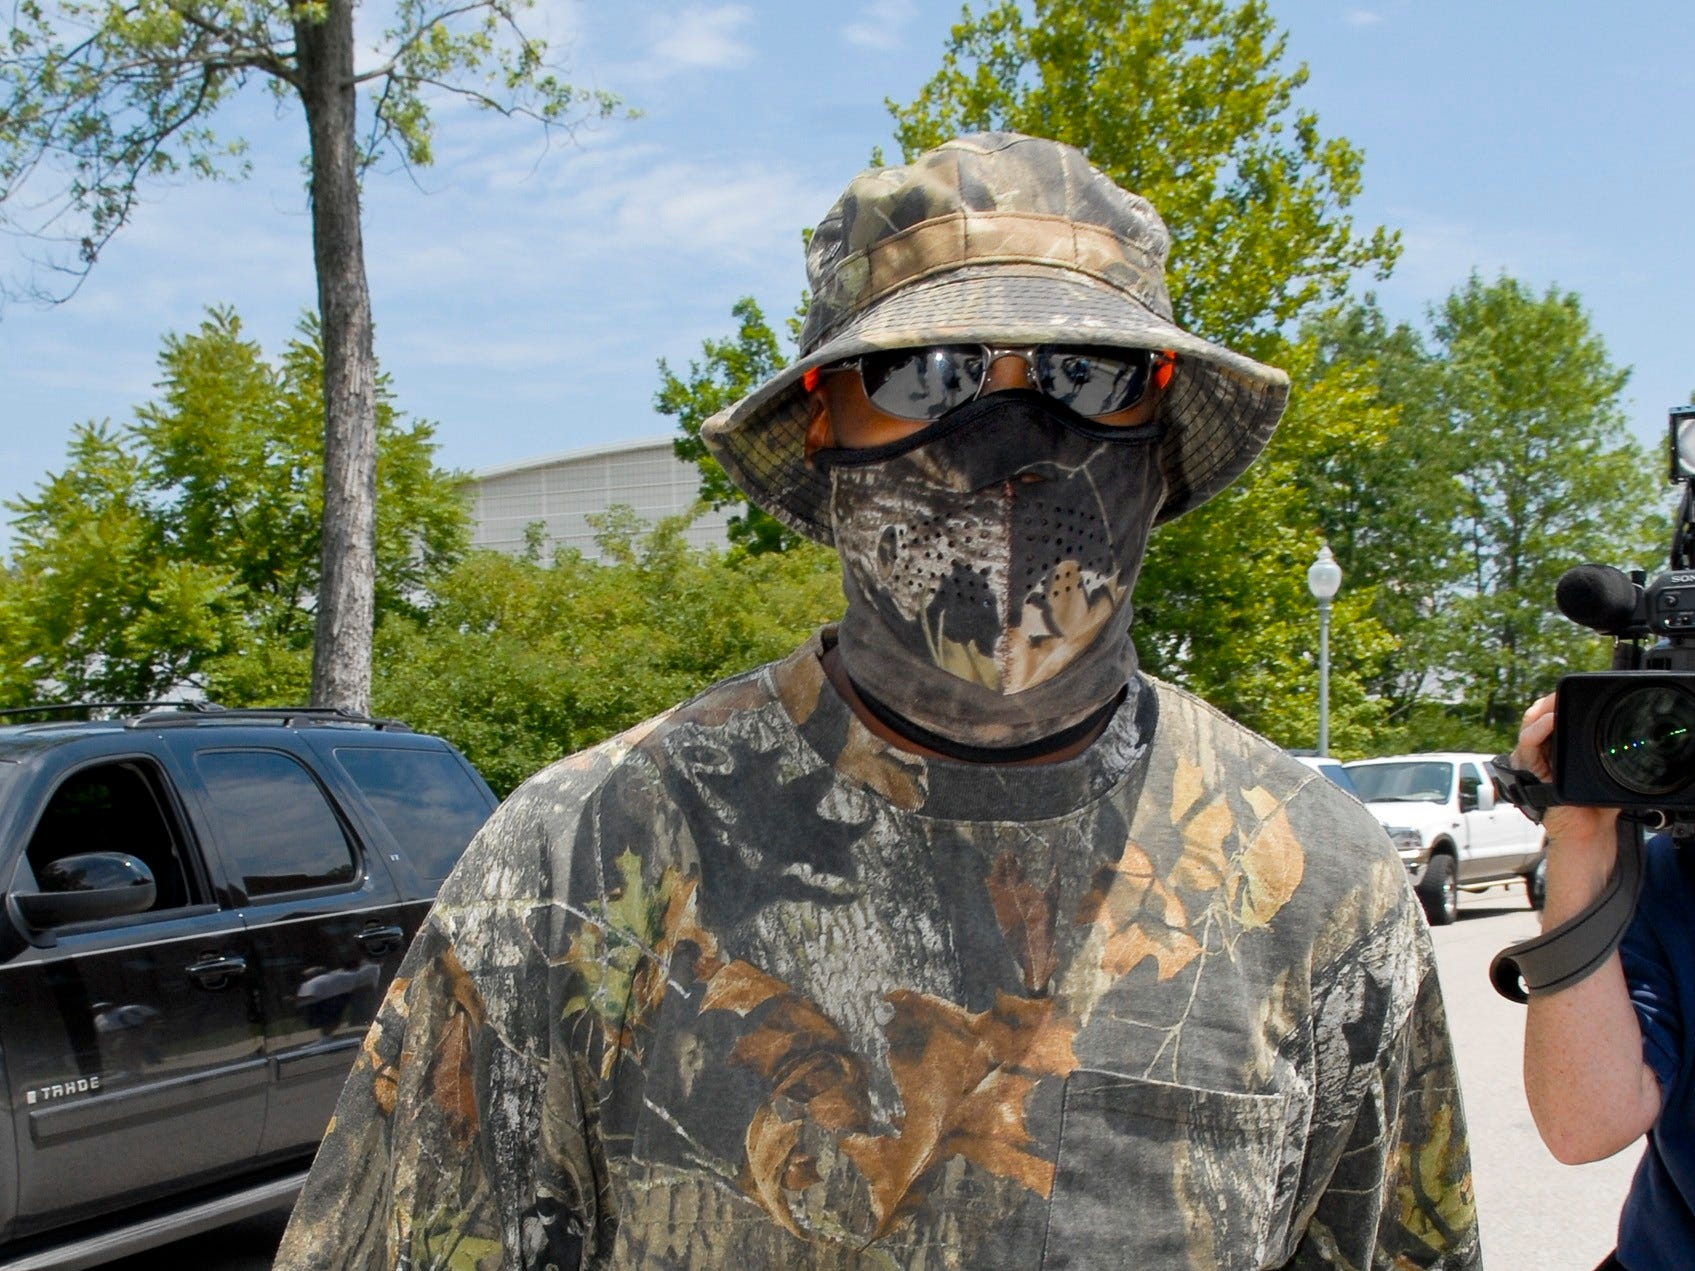 Wide receiver Reggie Wayne, dressed in full hunting camouflage, heads to the check-in area at the Indianapolis Colts football training camp in Terre Haute, Ind. on Sunday, July 29, 2007.